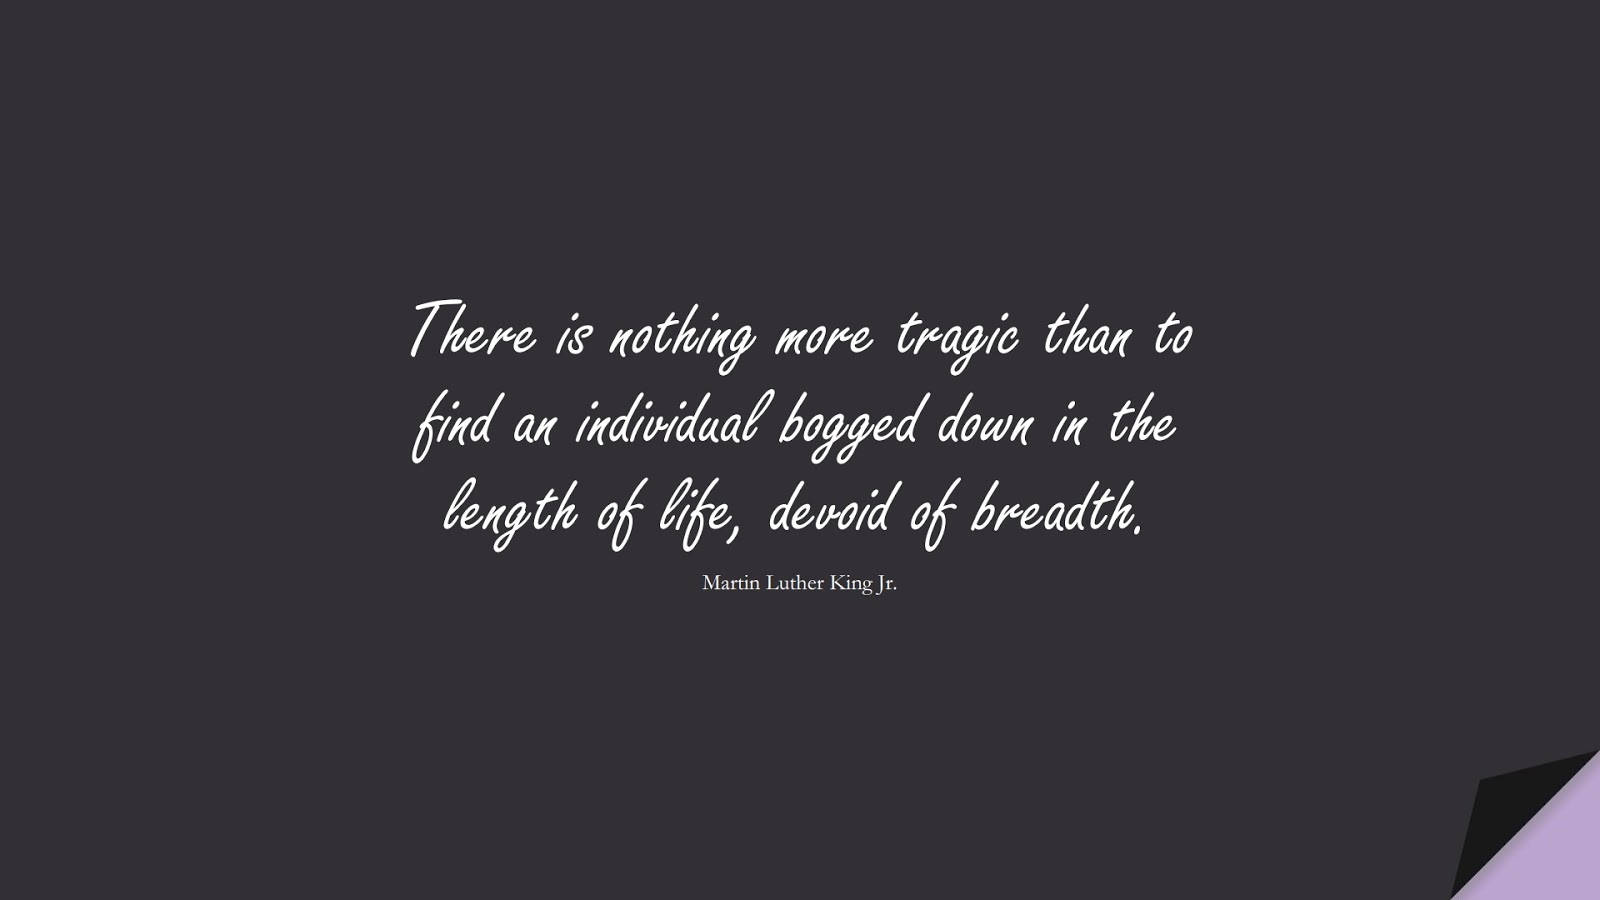 There is nothing more tragic than to find an individual bogged down in the length of life, devoid of breadth. (Martin Luther King Jr.);  #MartinLutherKingJrQuotes